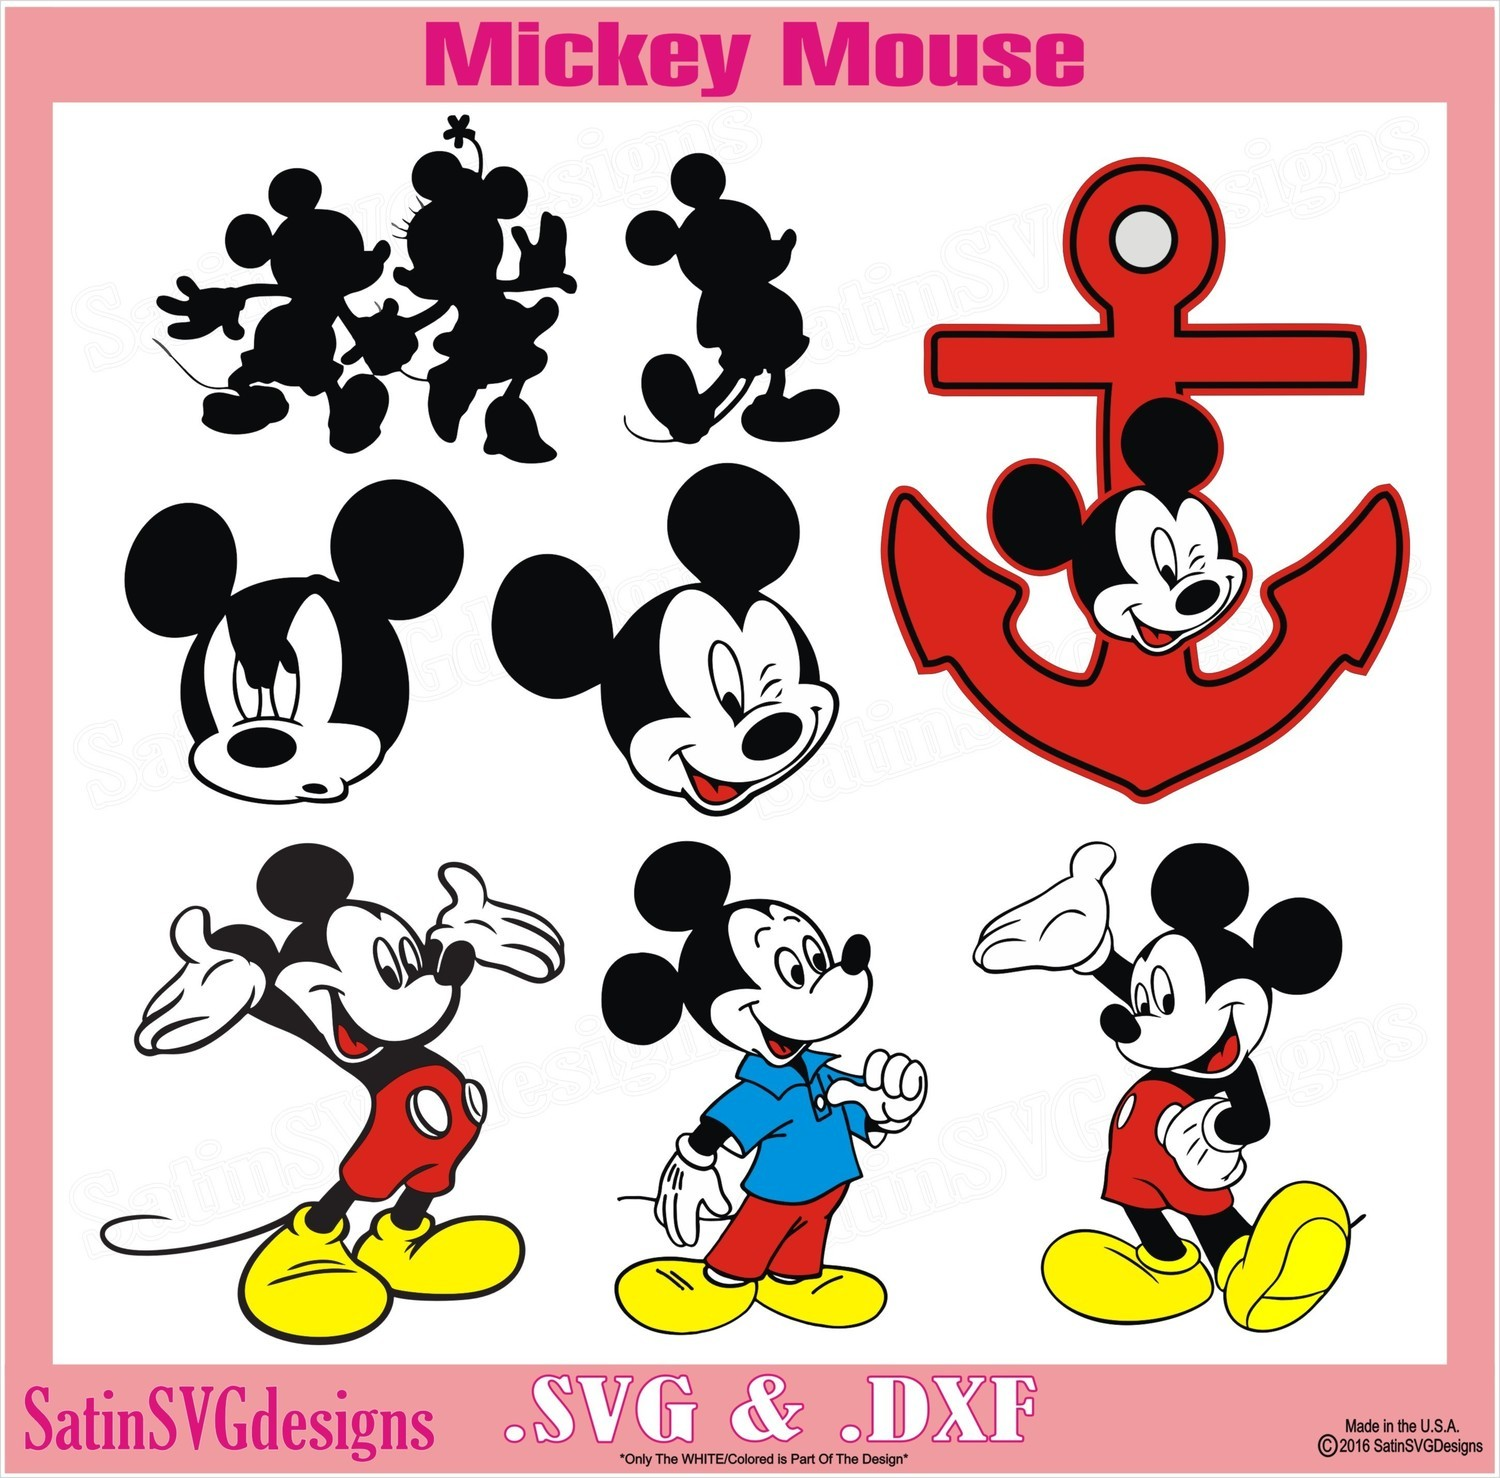 Mickey Mouse Minnie Disney Design SVG Files, Cricut, Silhouette Studio, Digital Cut Files